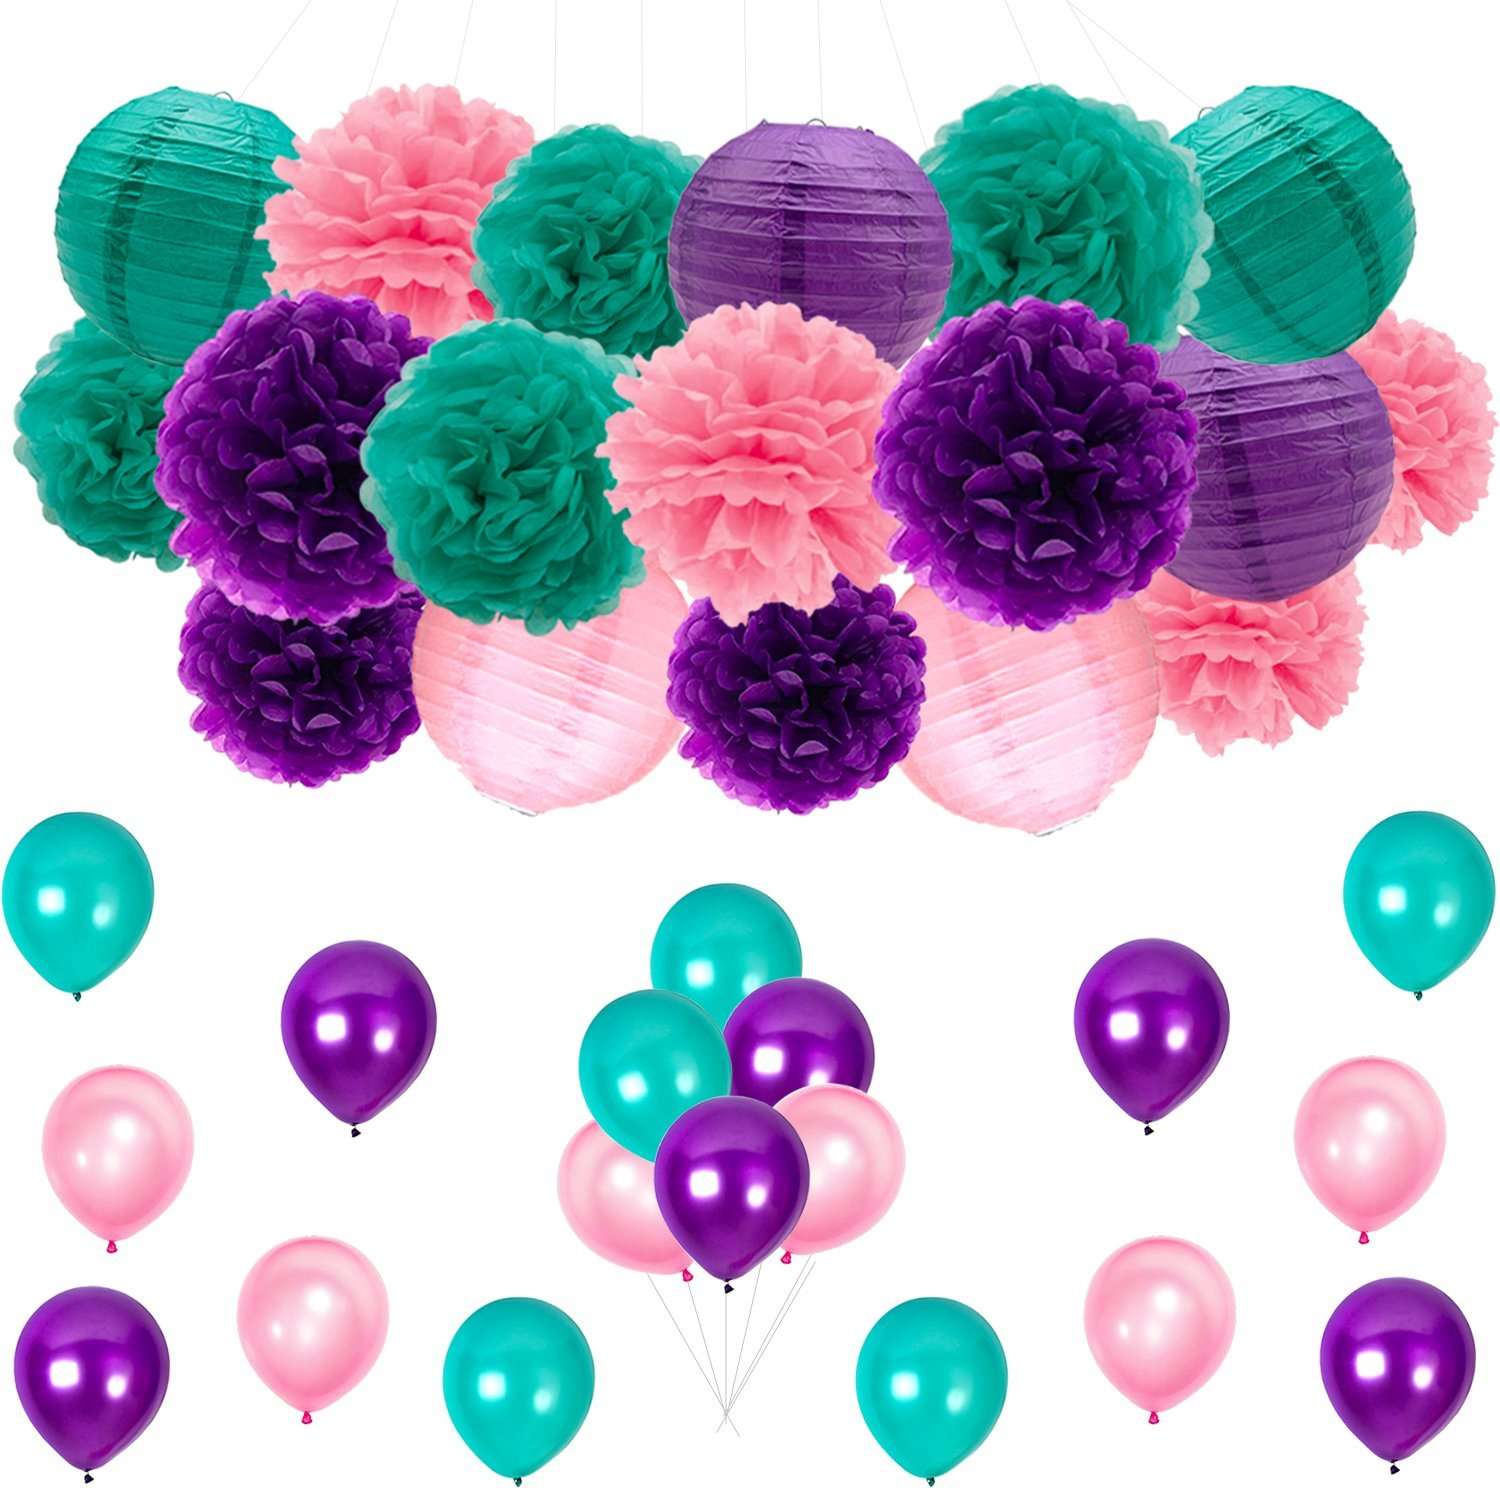 Mermaid Party Decorations Decors/Under the Sea Party Supplies Teal Pink Mermaid Purple Pom Poms Lanterns Balloons for Mermaid Birthday Party Supplies Baby Shower Decorations Frozen Party Supplies